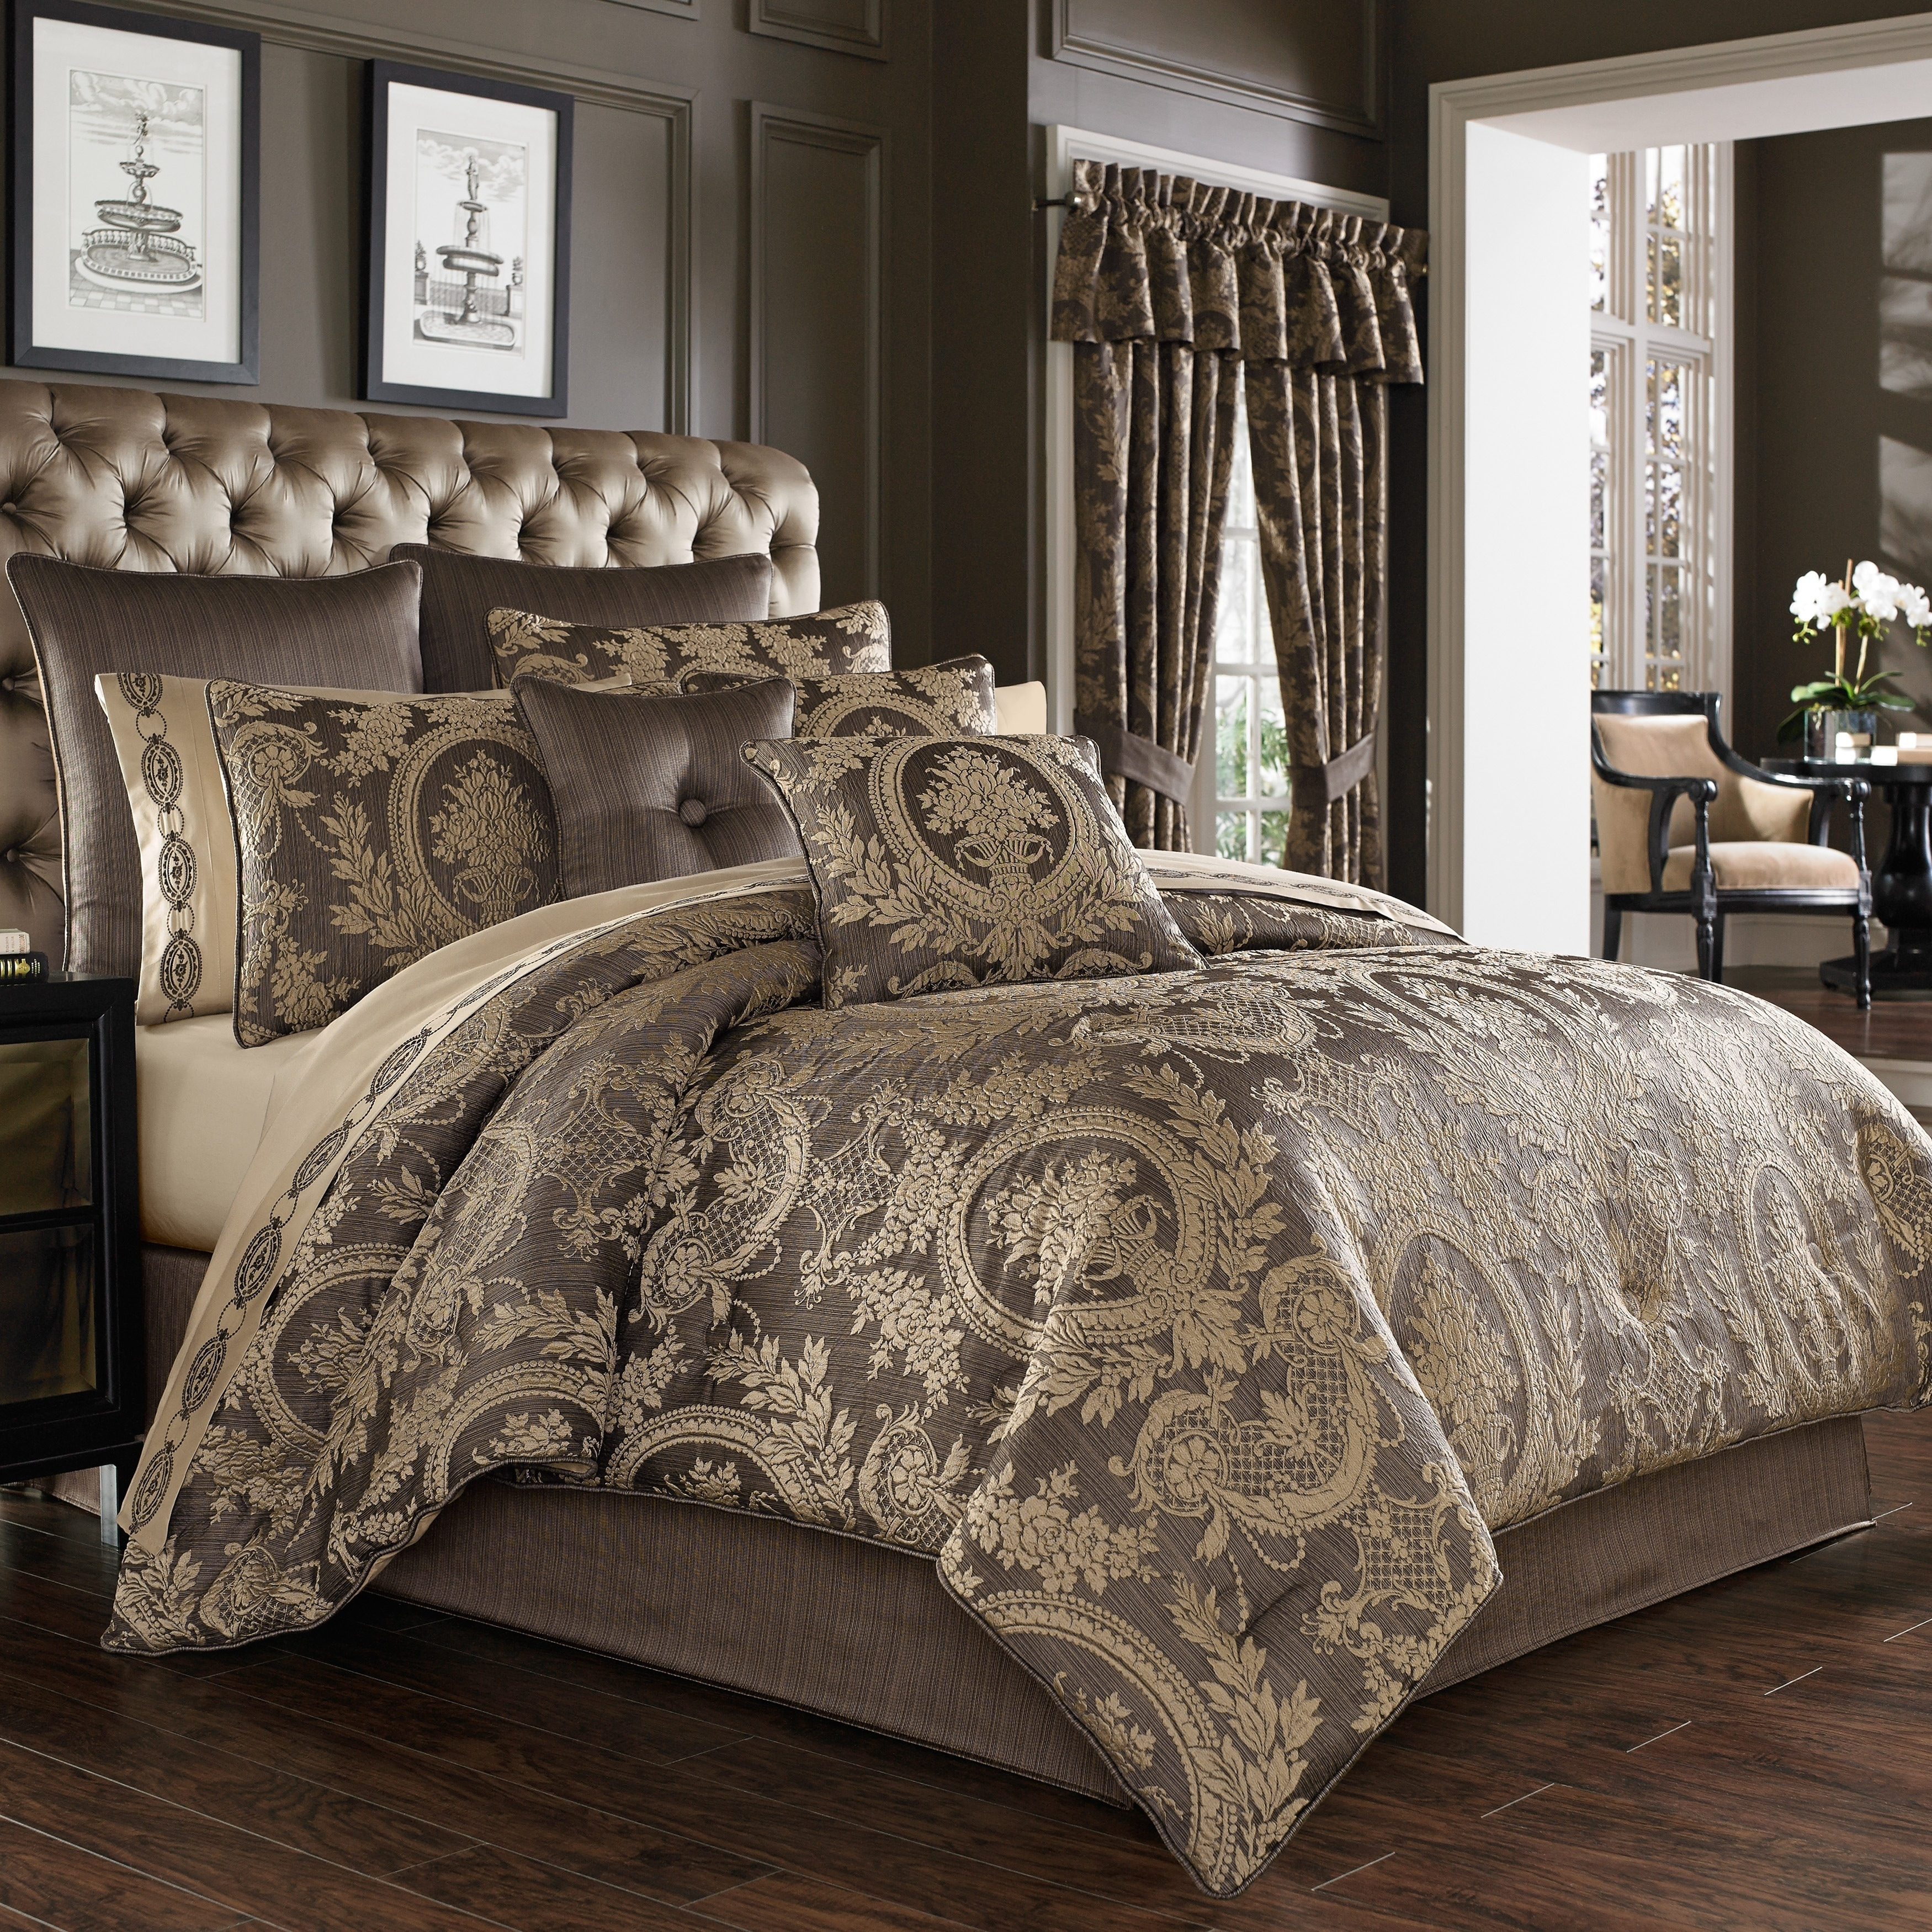 Gracewood Hollow Lisako 4 Piece Luxury Comforter Set On Sale Overstock 28458662 California King